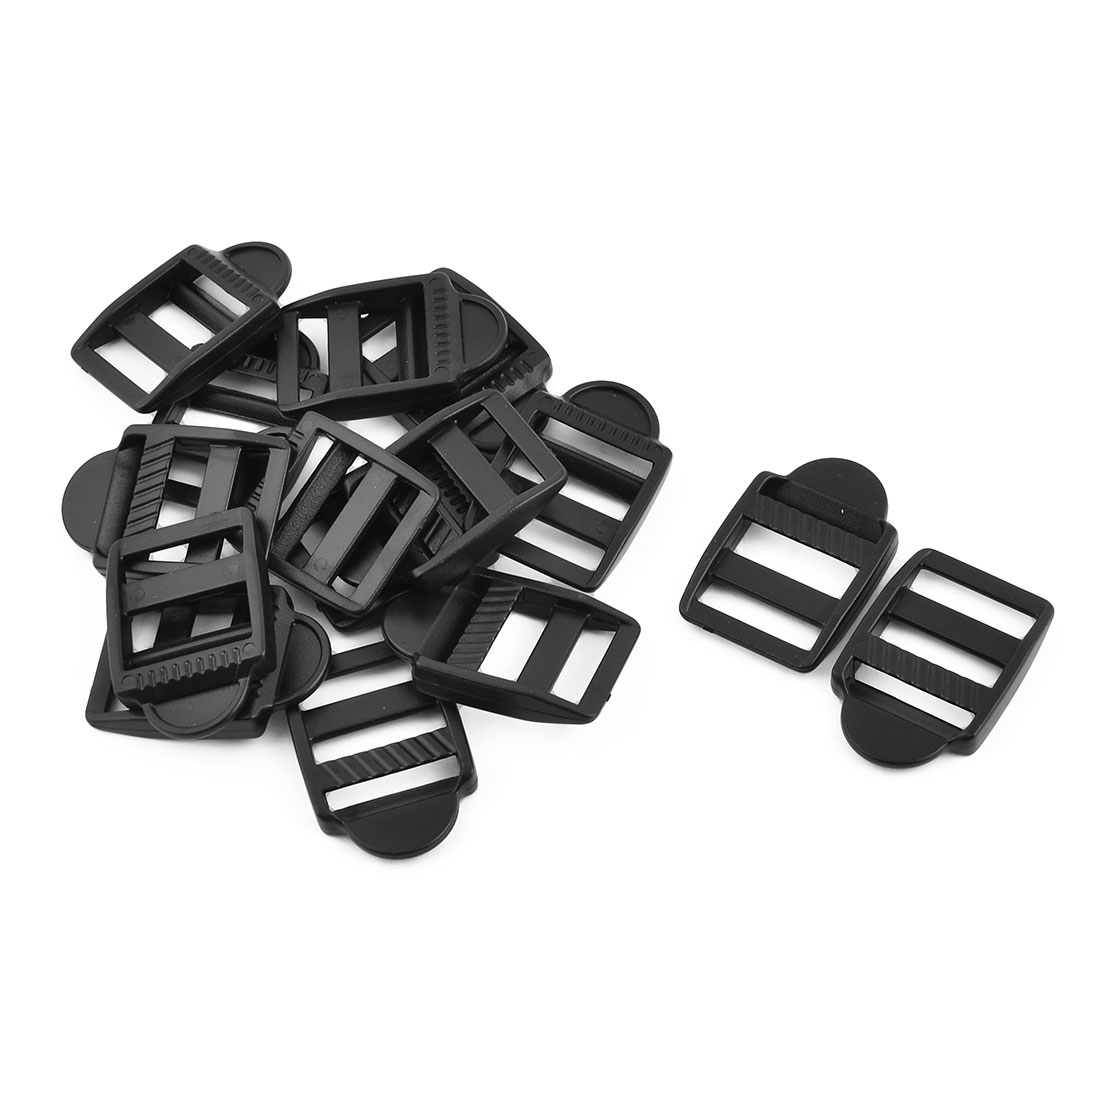 Plastic Suitcase Bag Belt Connecting Ladder Lock Fastener Buckle 20mm Strap Width 15pcs